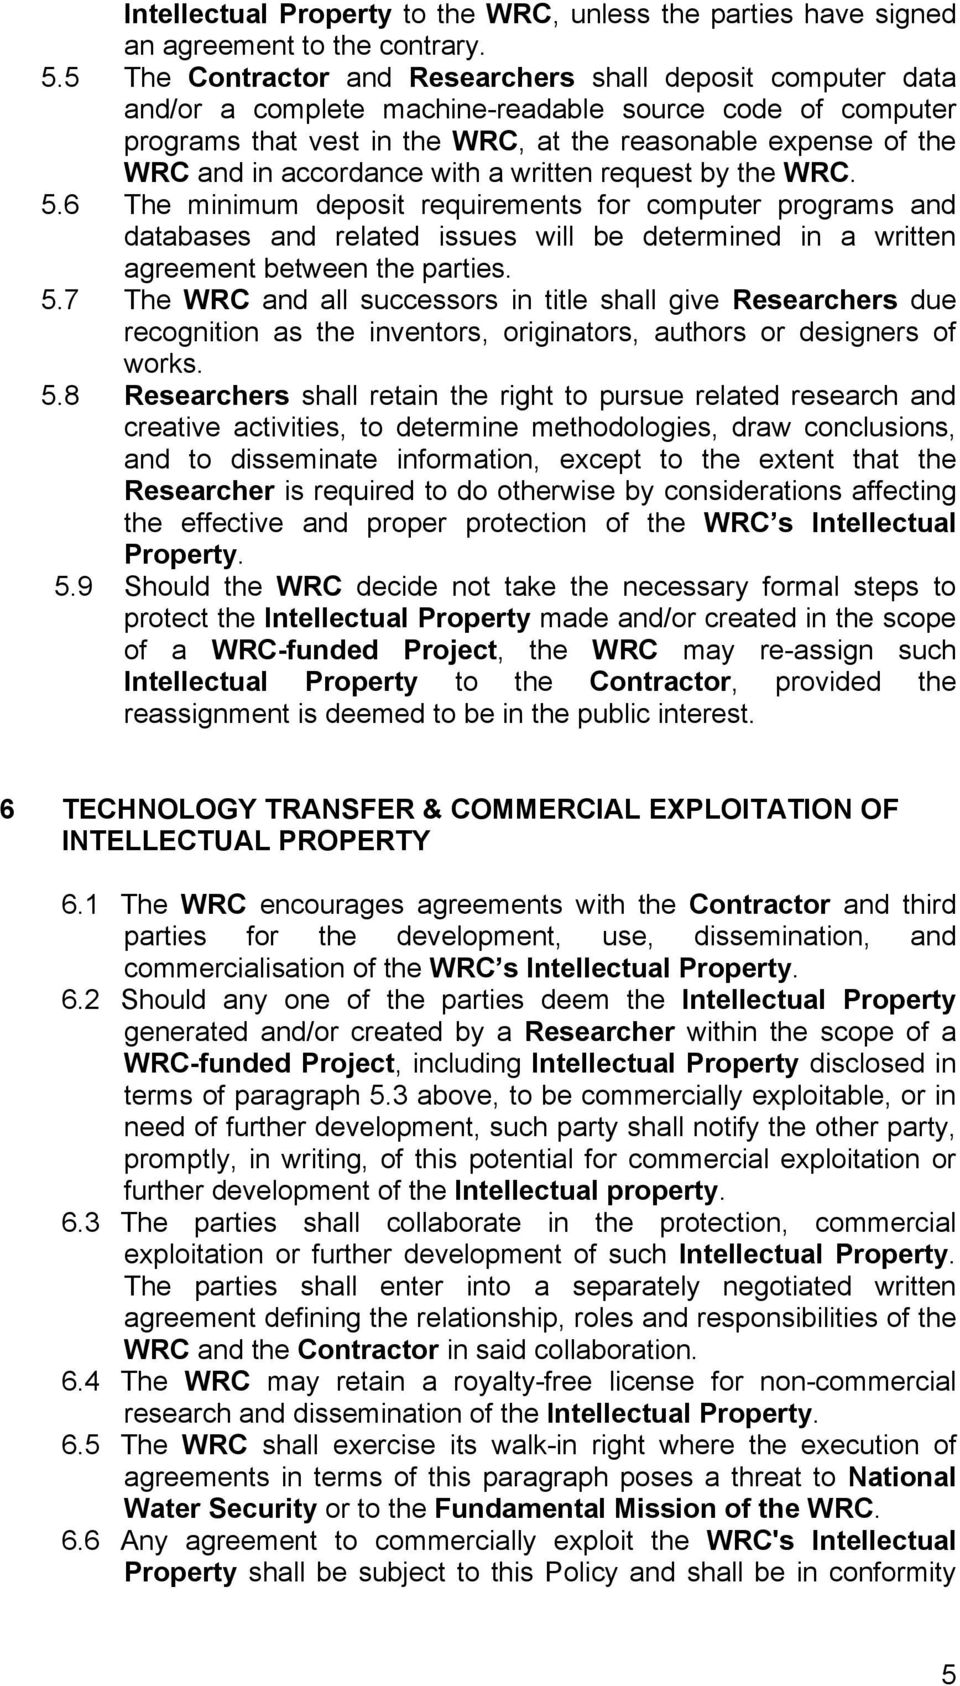 accordance with a written request by the WRC. 5.6 The minimum deposit requirements for computer programs and databases and related issues will be determined in a written agreement between the parties.